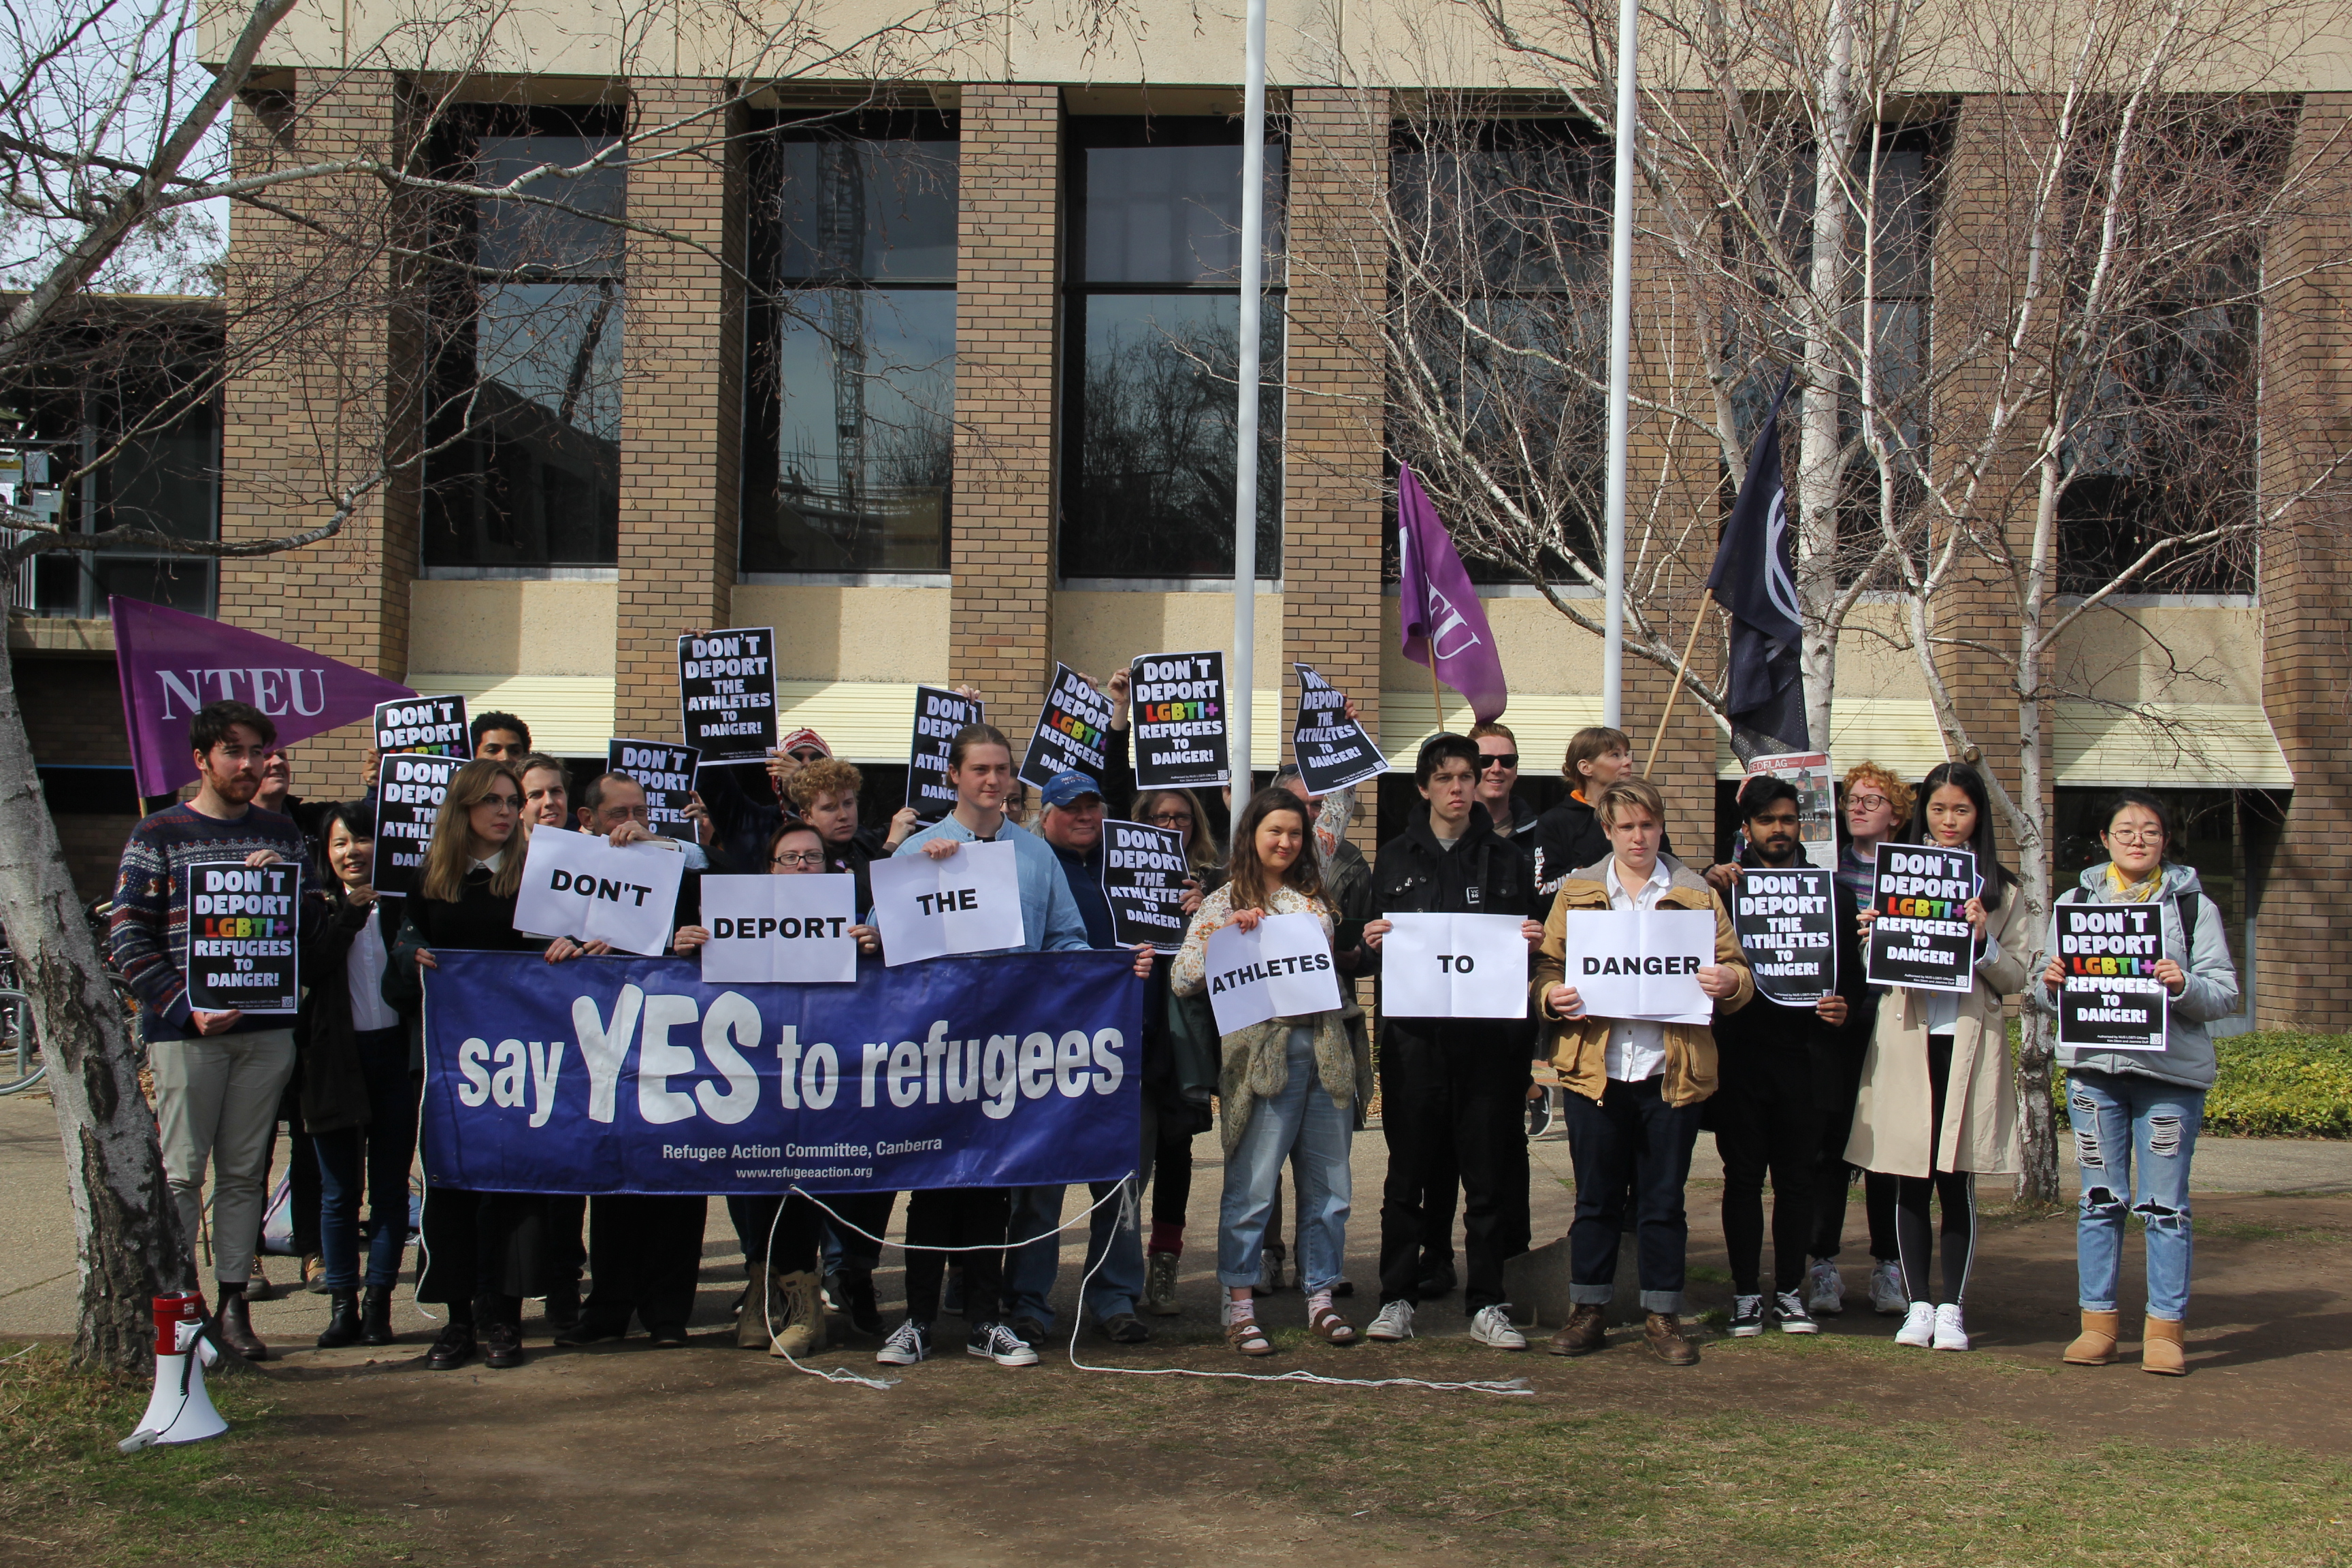 Approximately 20 students with banner 'say YES to refugees'